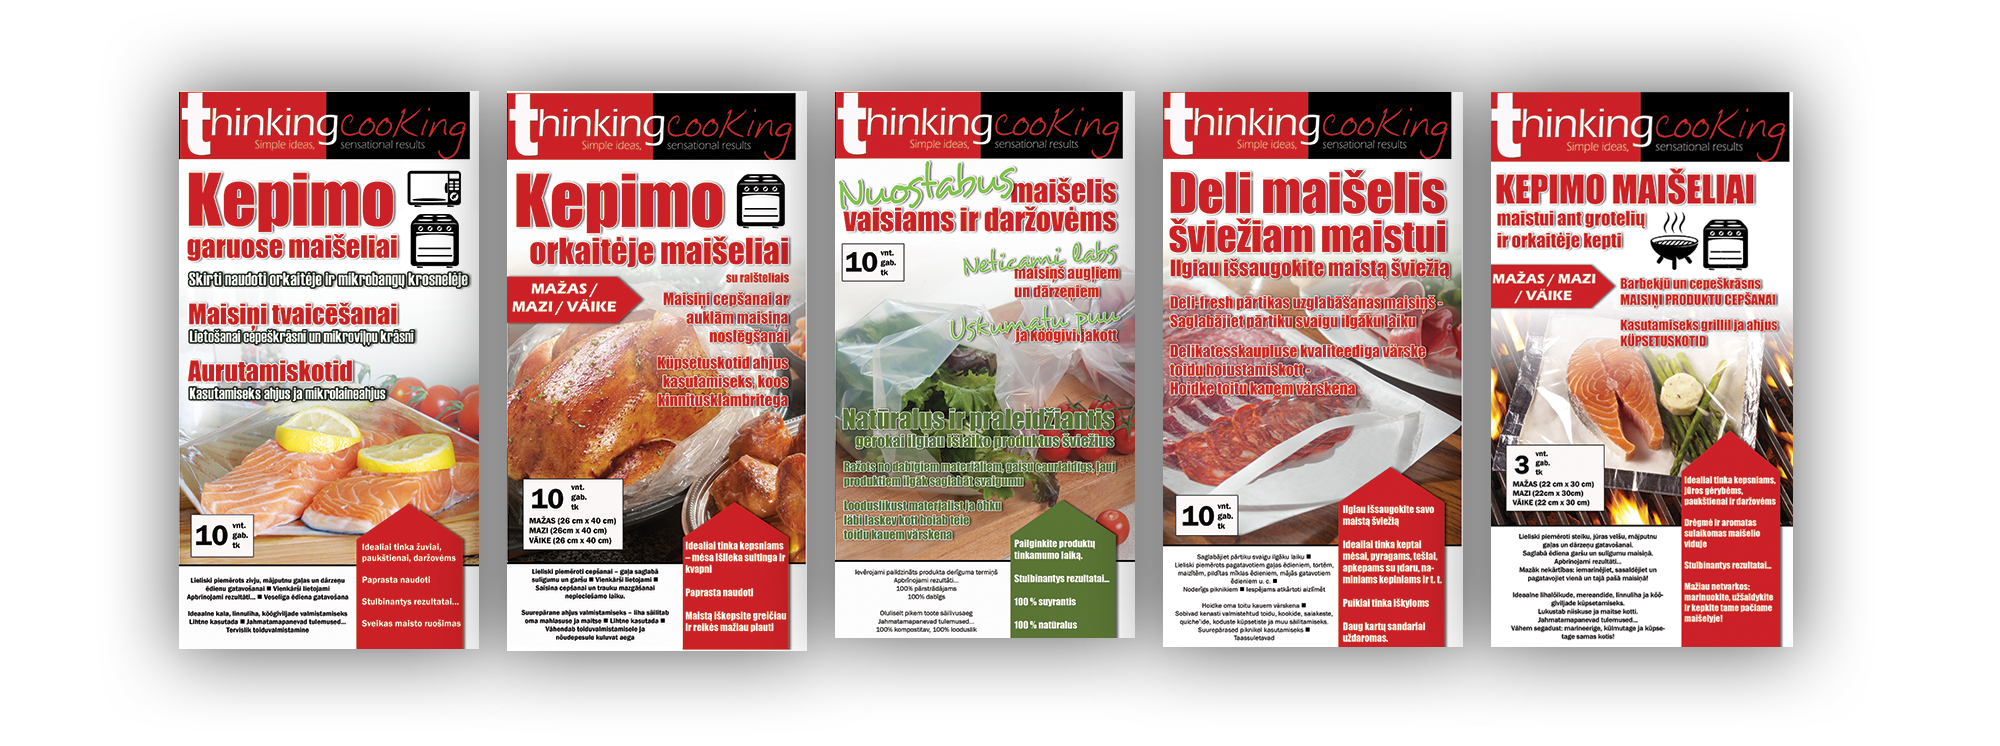 Sirane's Thinking-Cooking range is now available in Lithuania, Latvia and Estonia